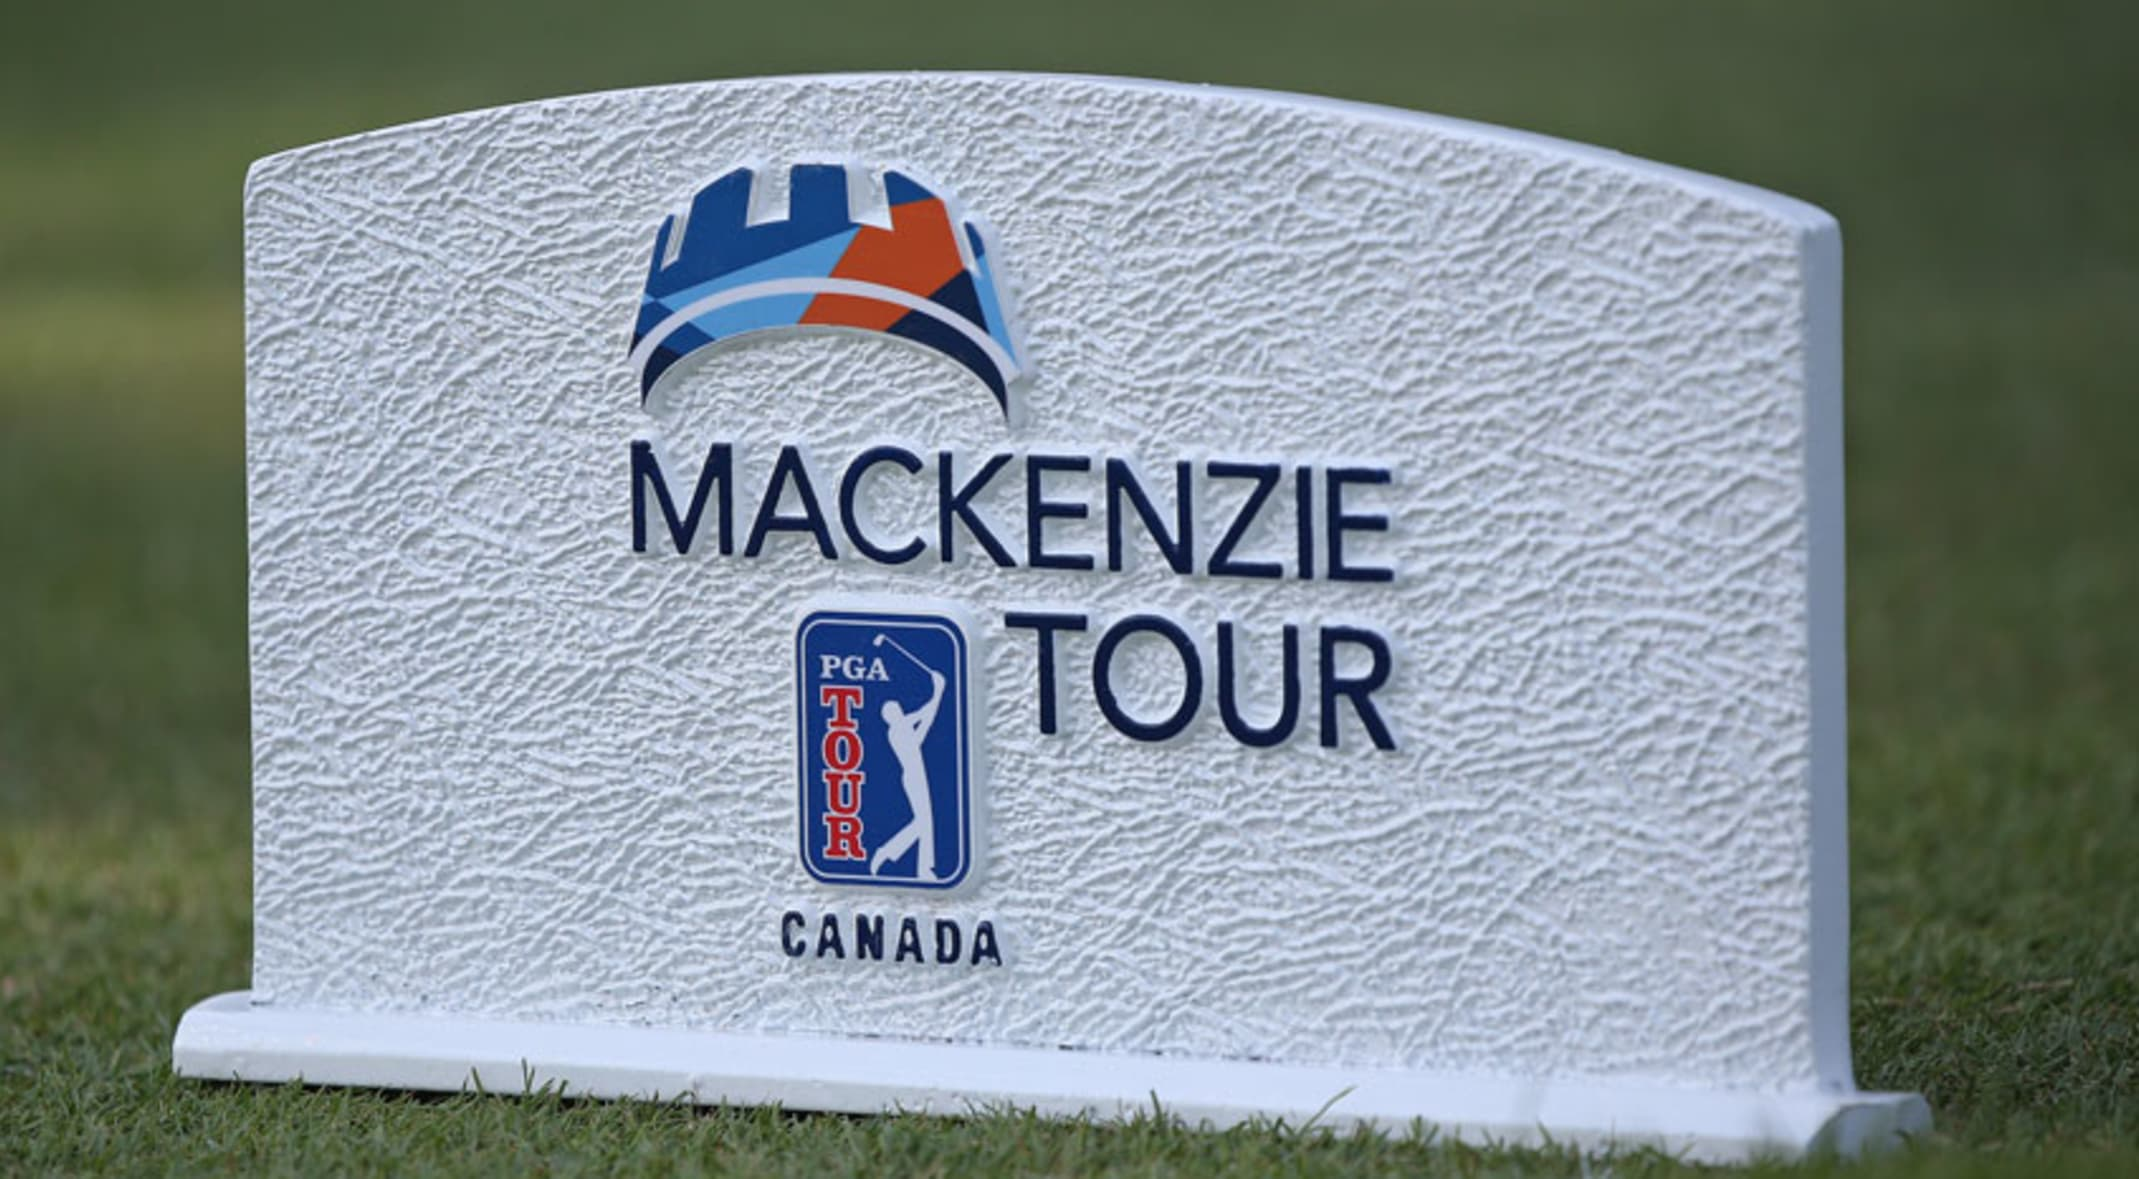 Pga Tour Latin America Q School 2020 Mackenzie Tour 2019 Q School dates and FAQ